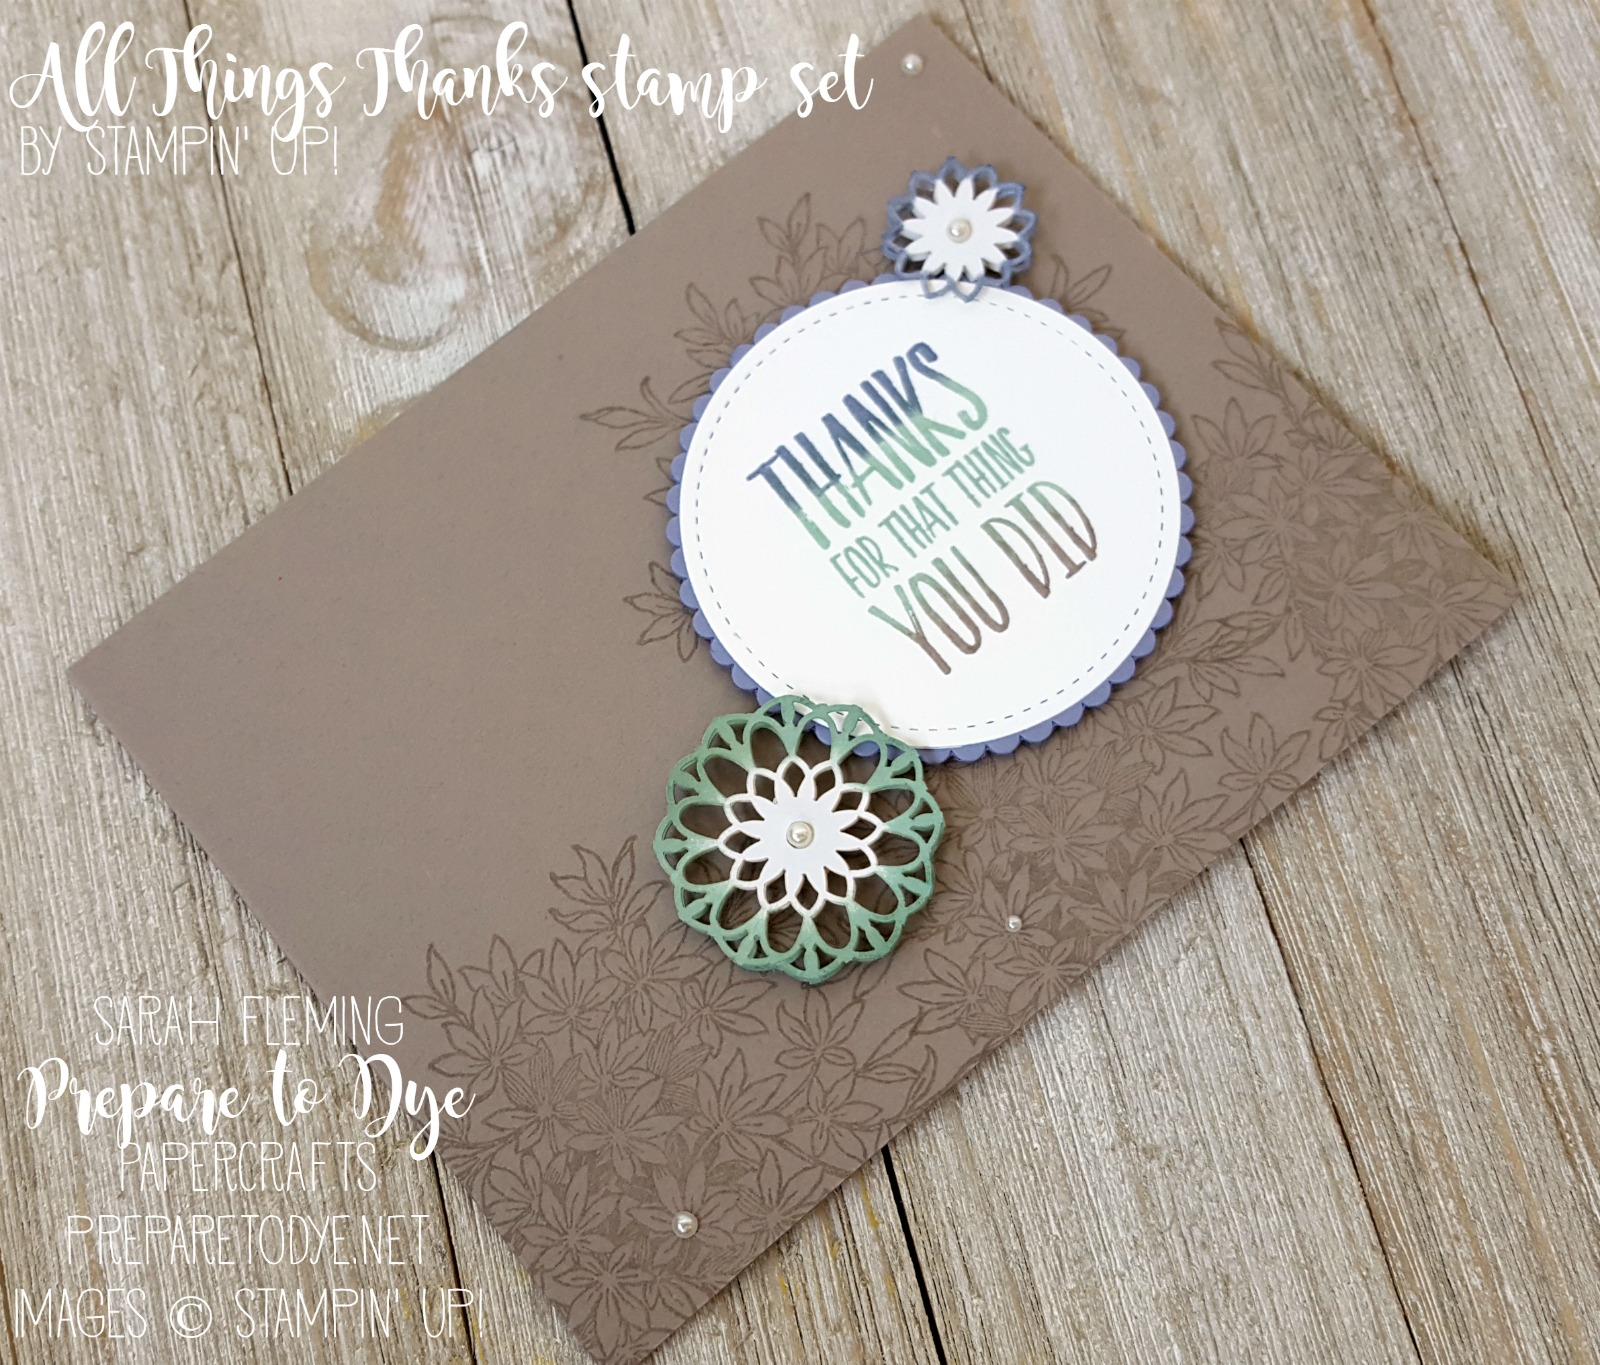 Stampin' Up! All Things Thanks and Awesomely Artistic stamps with Lace Doilies - Sarah Fleming - Prepare to Dye Papercrafts